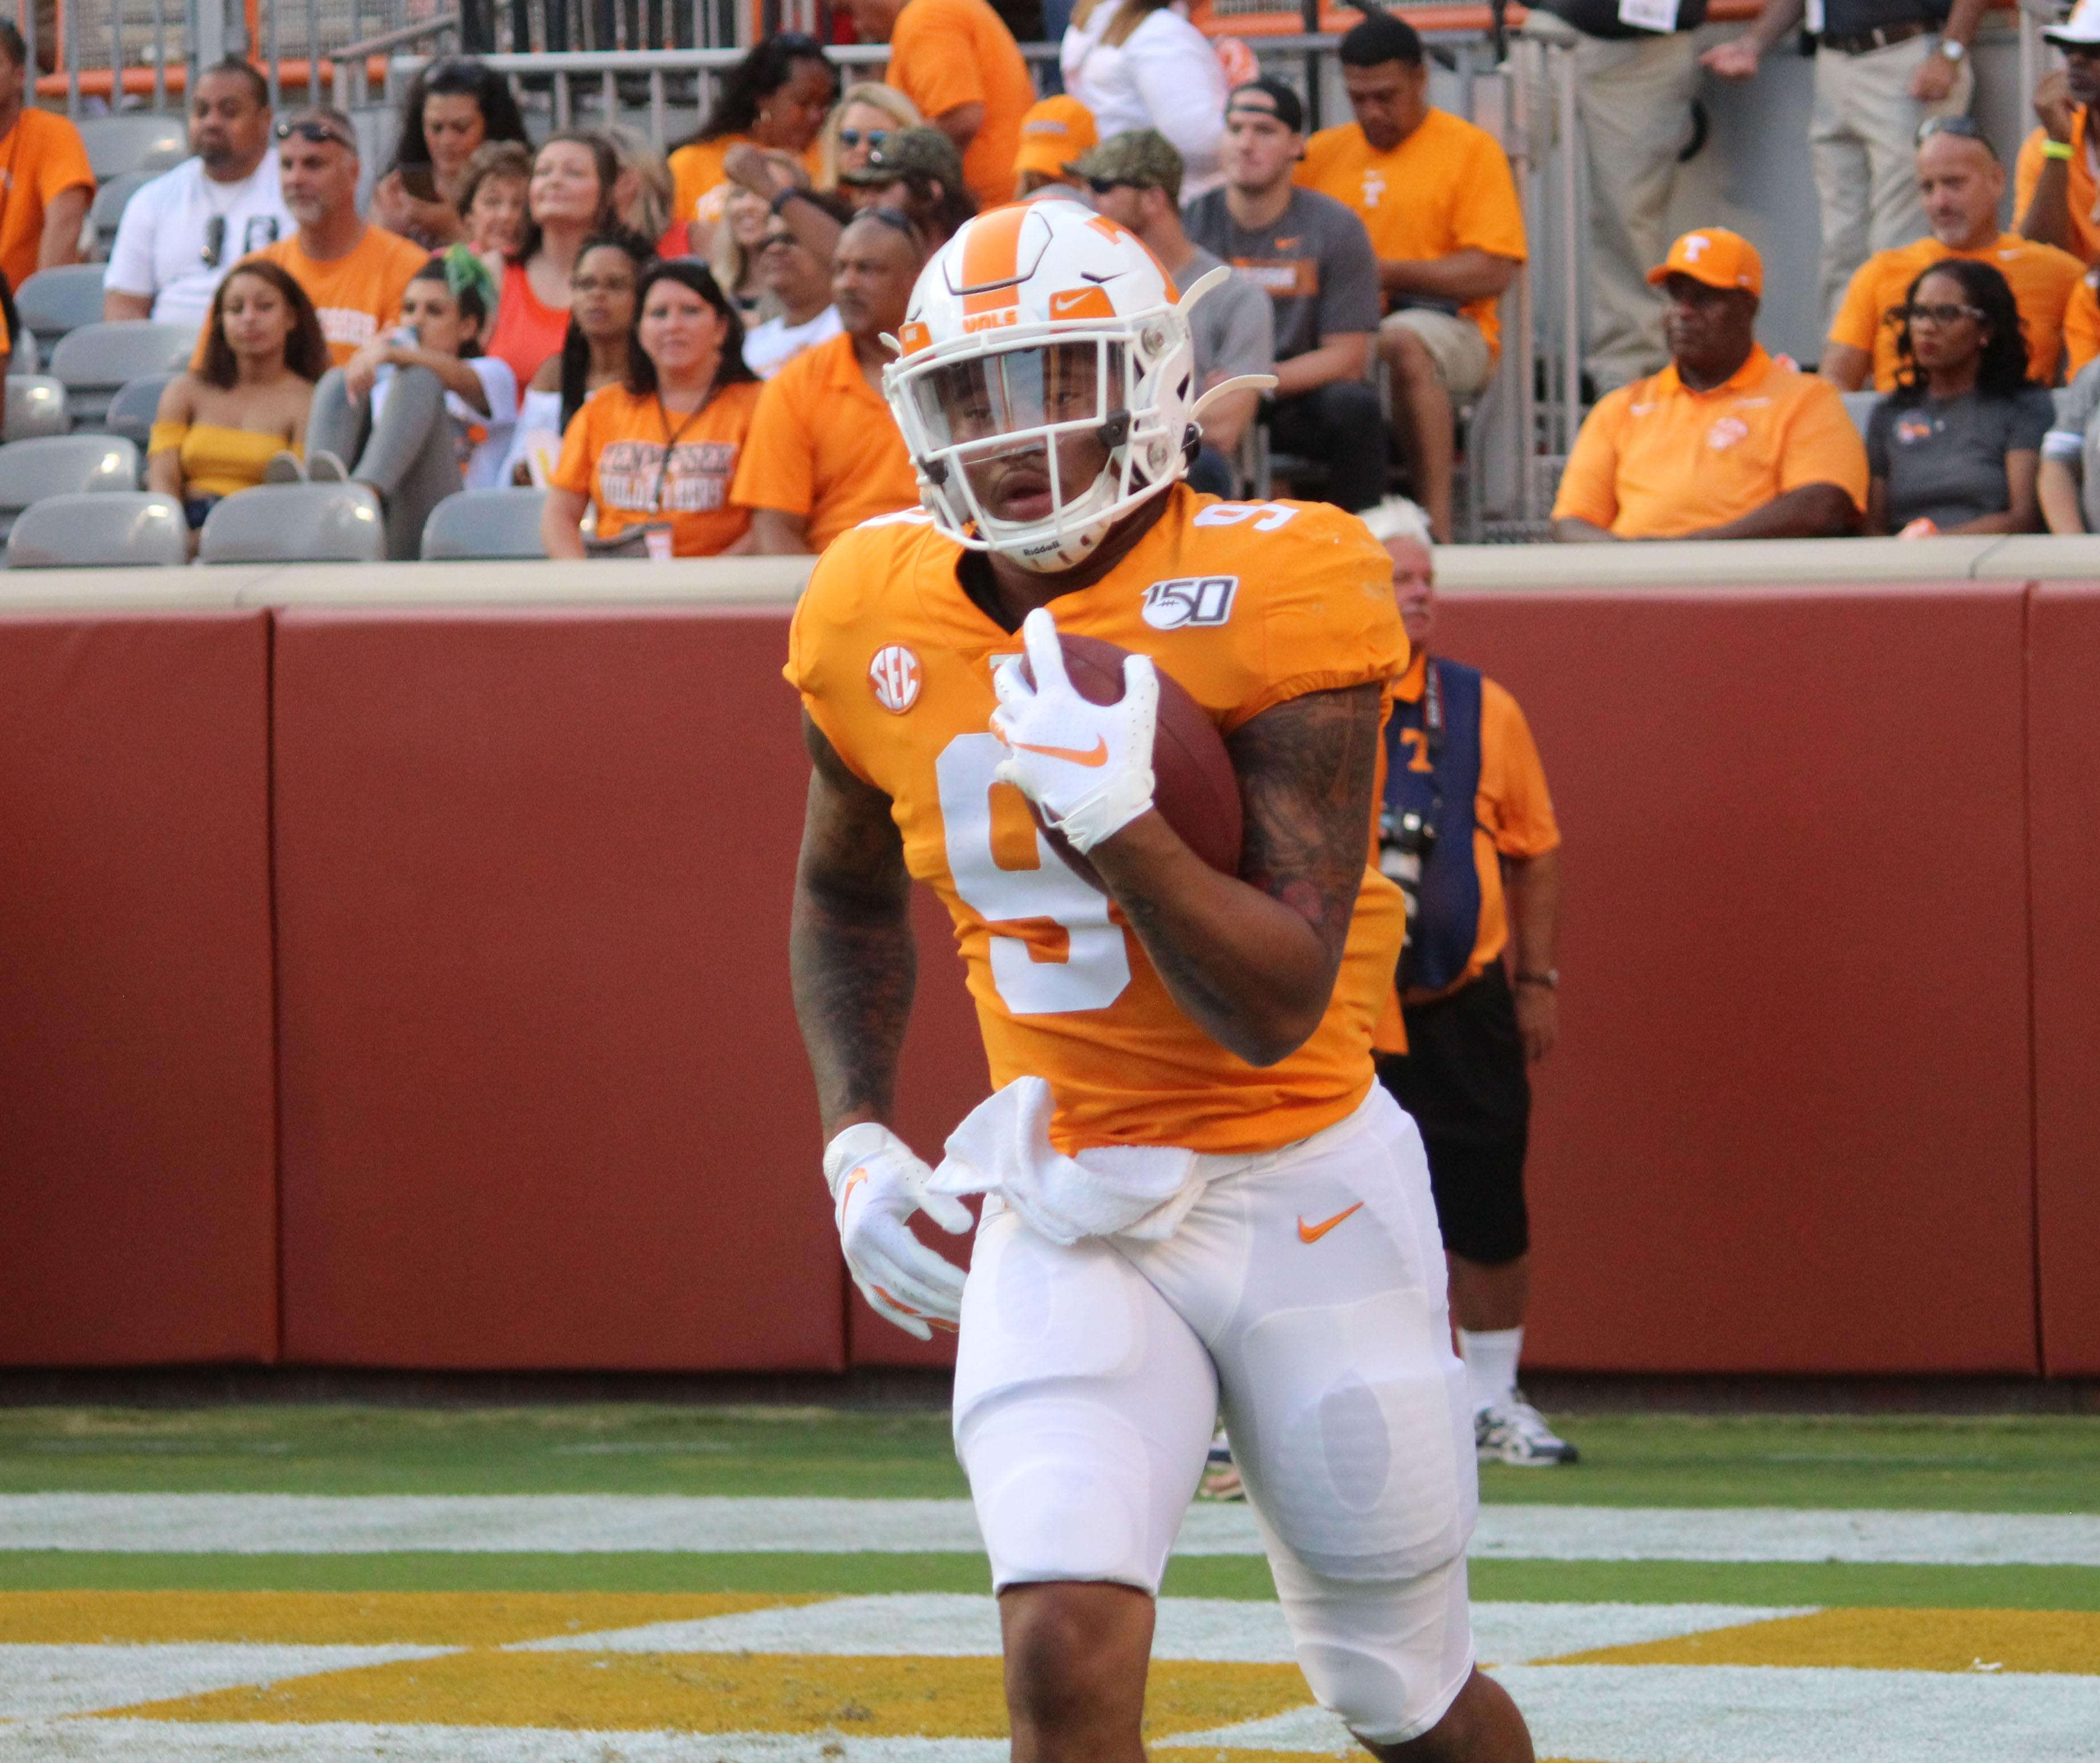 Silverberg: Vols in home stretch after loss to Bama